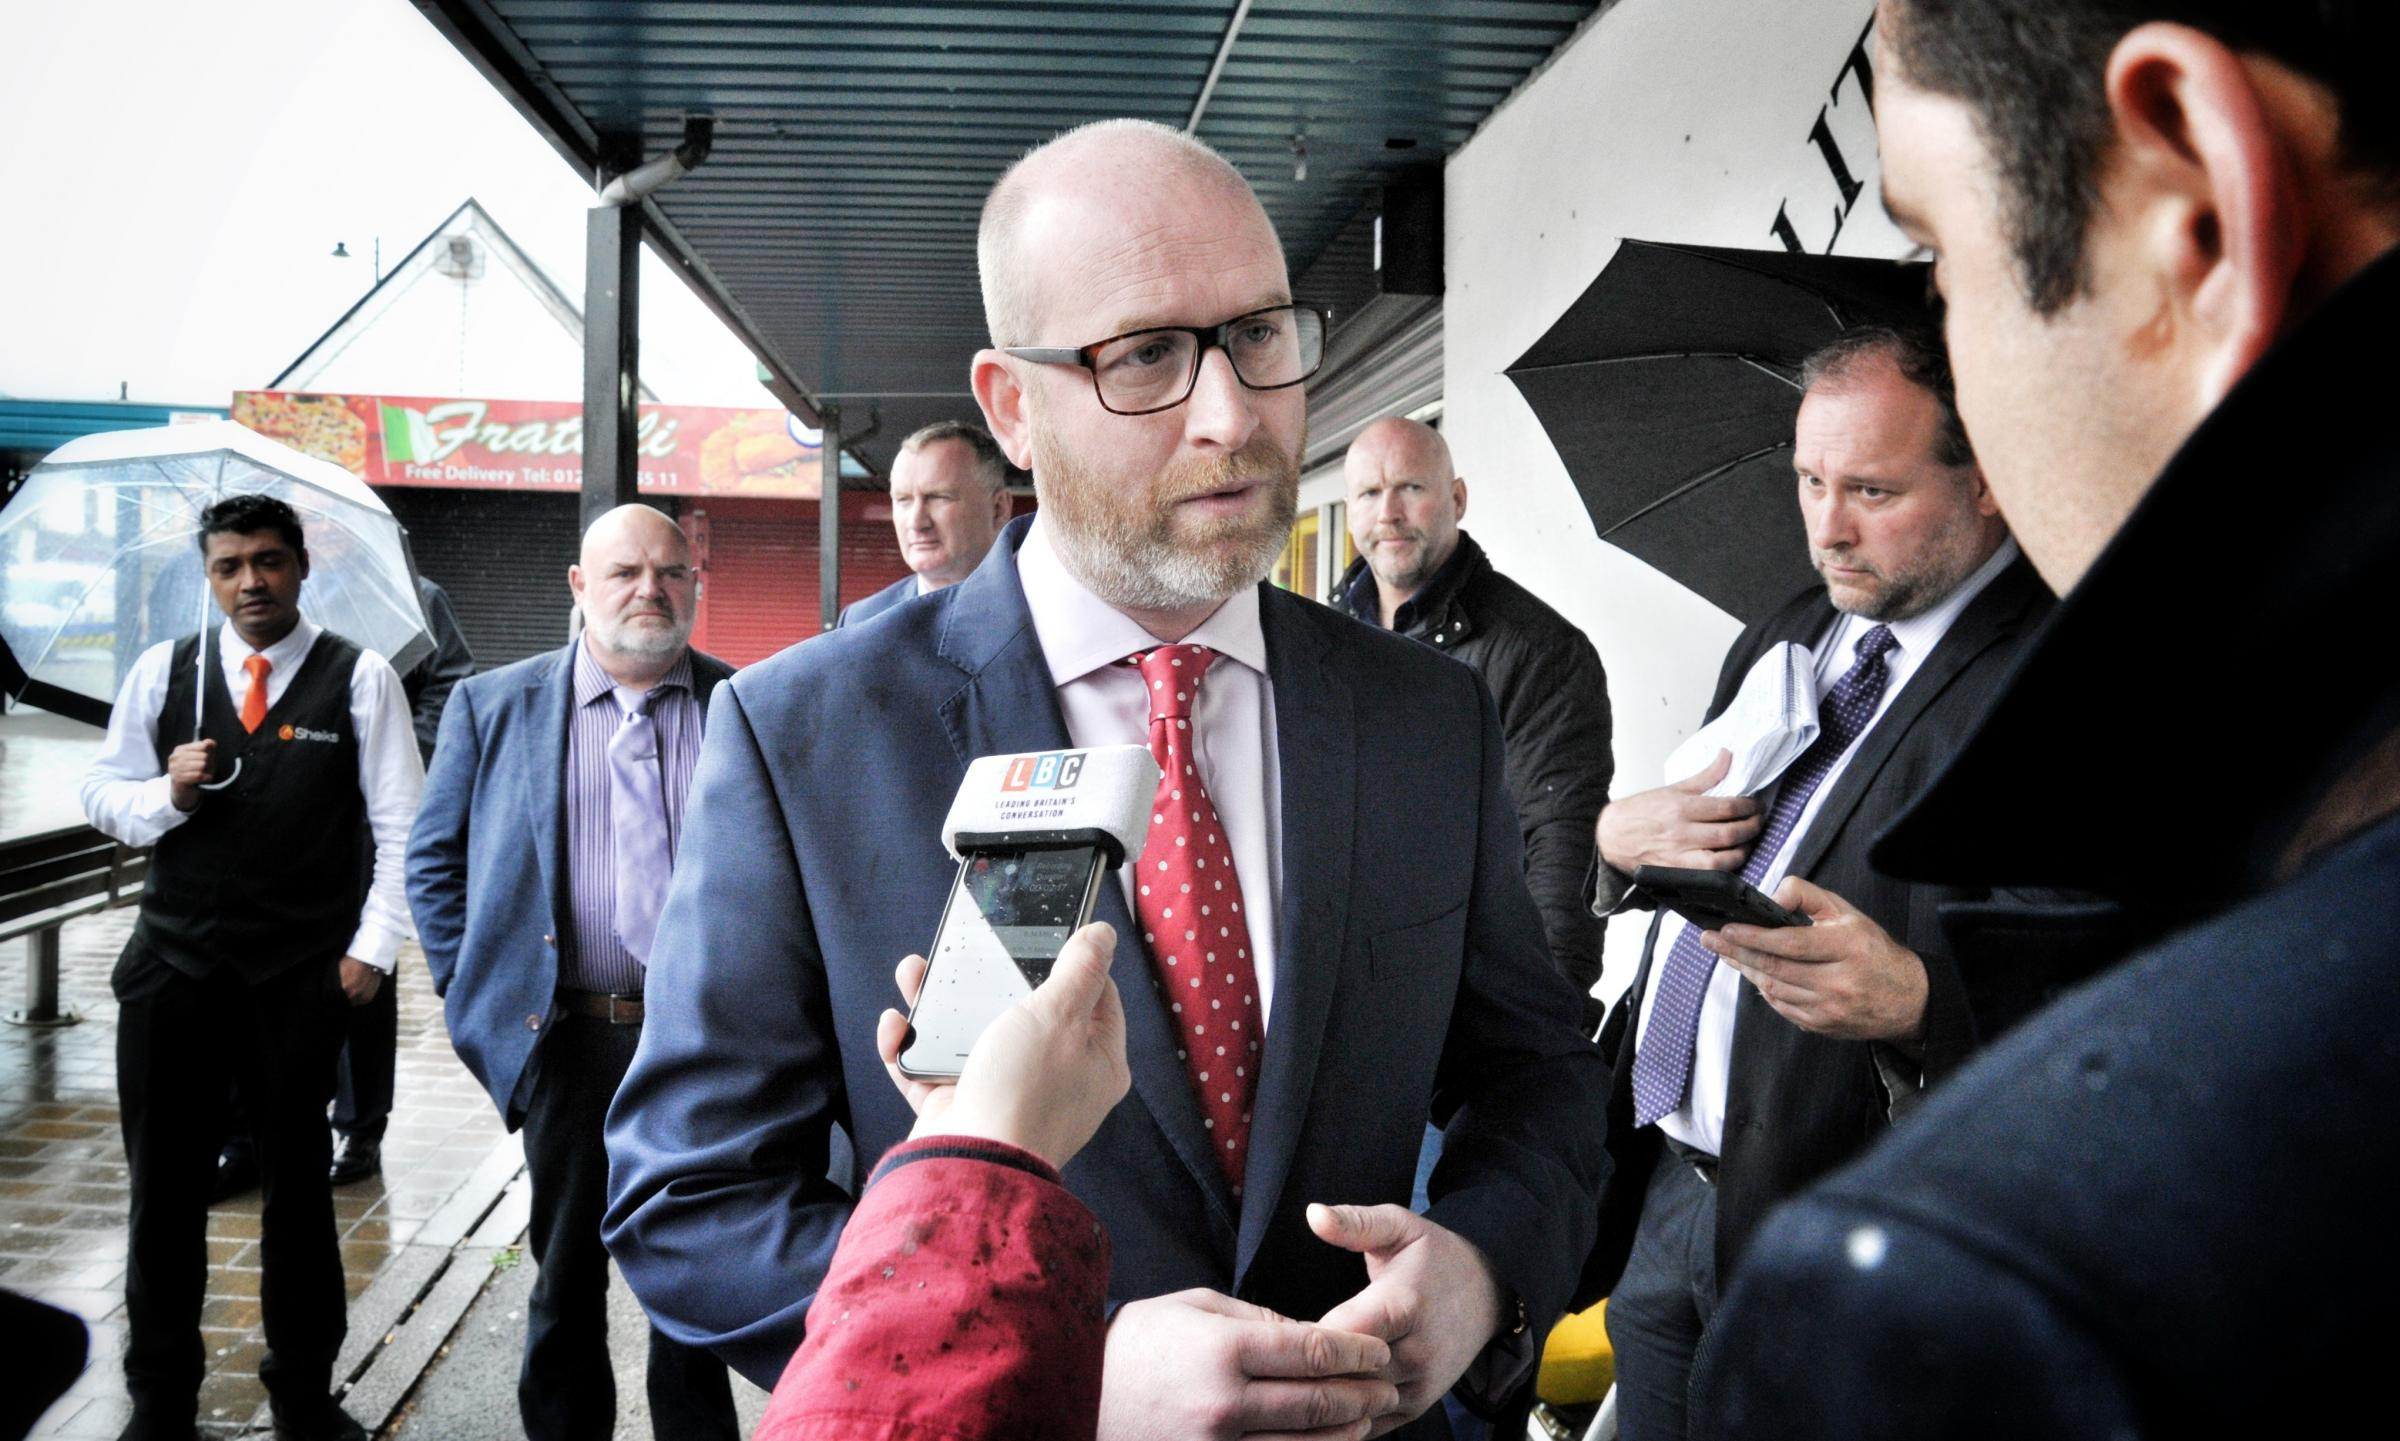 UKIP leader Paul Nuttall during a visit to Little Lever.